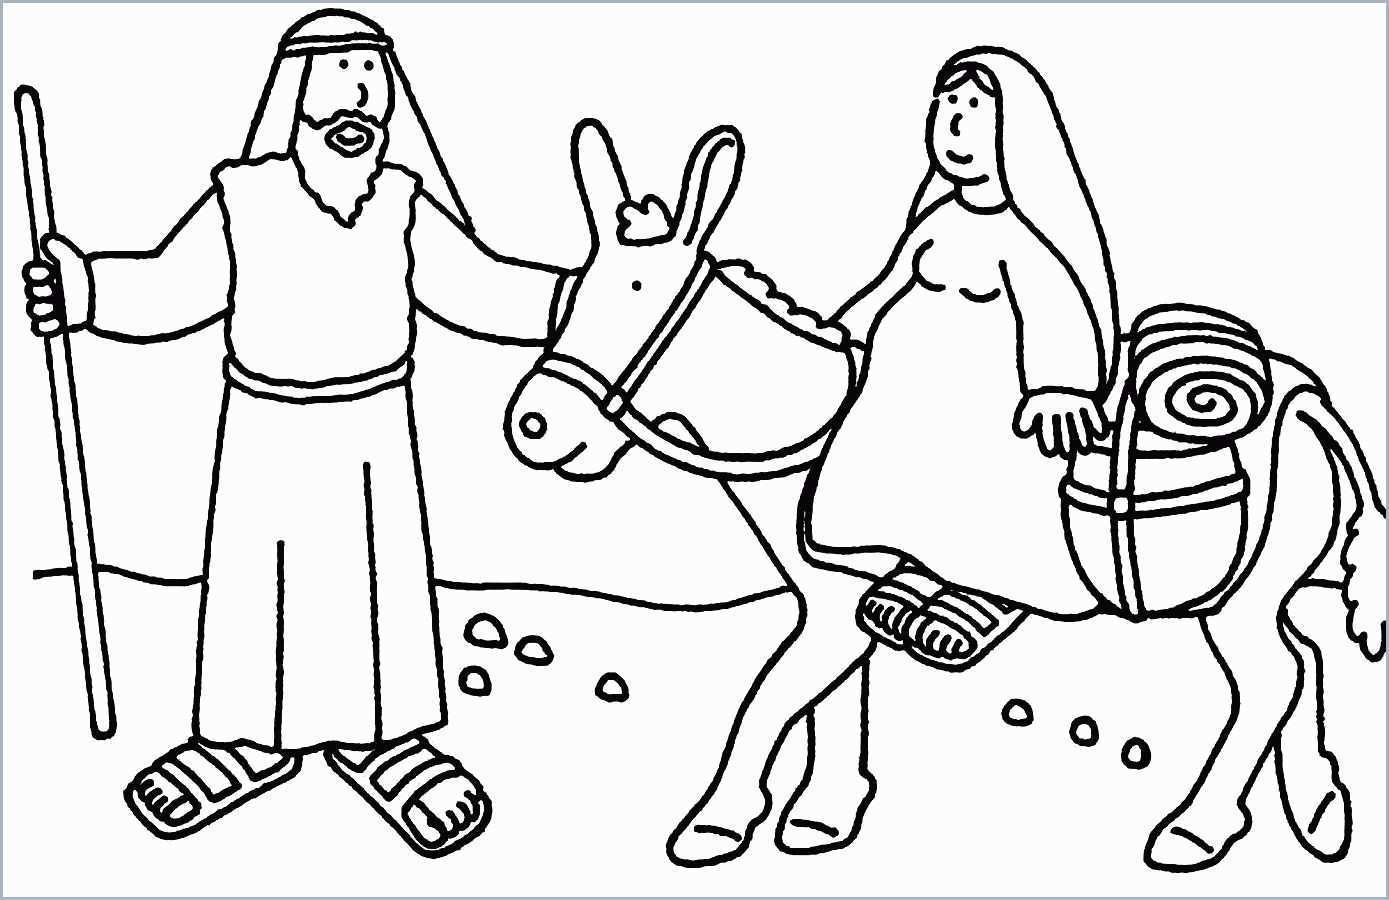 Coloring Pages : Free Printable Bible Coloring And Activityges - Free Printable Bible Christmas Coloring Pages